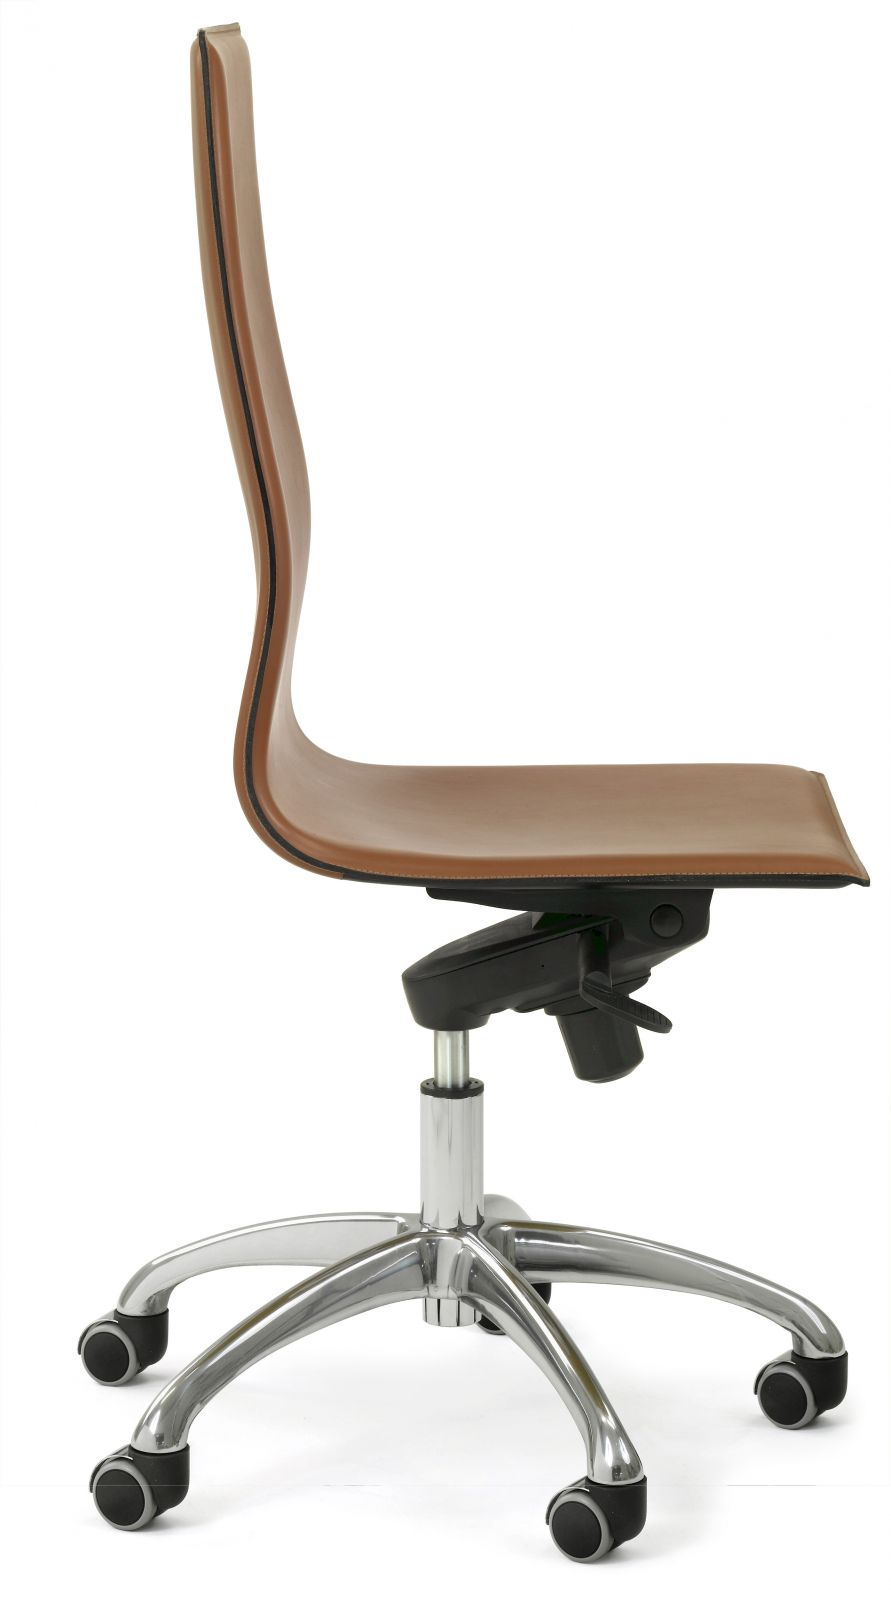 modern-office-chairs-Italian-furniture-designer-chairs (75).jpg